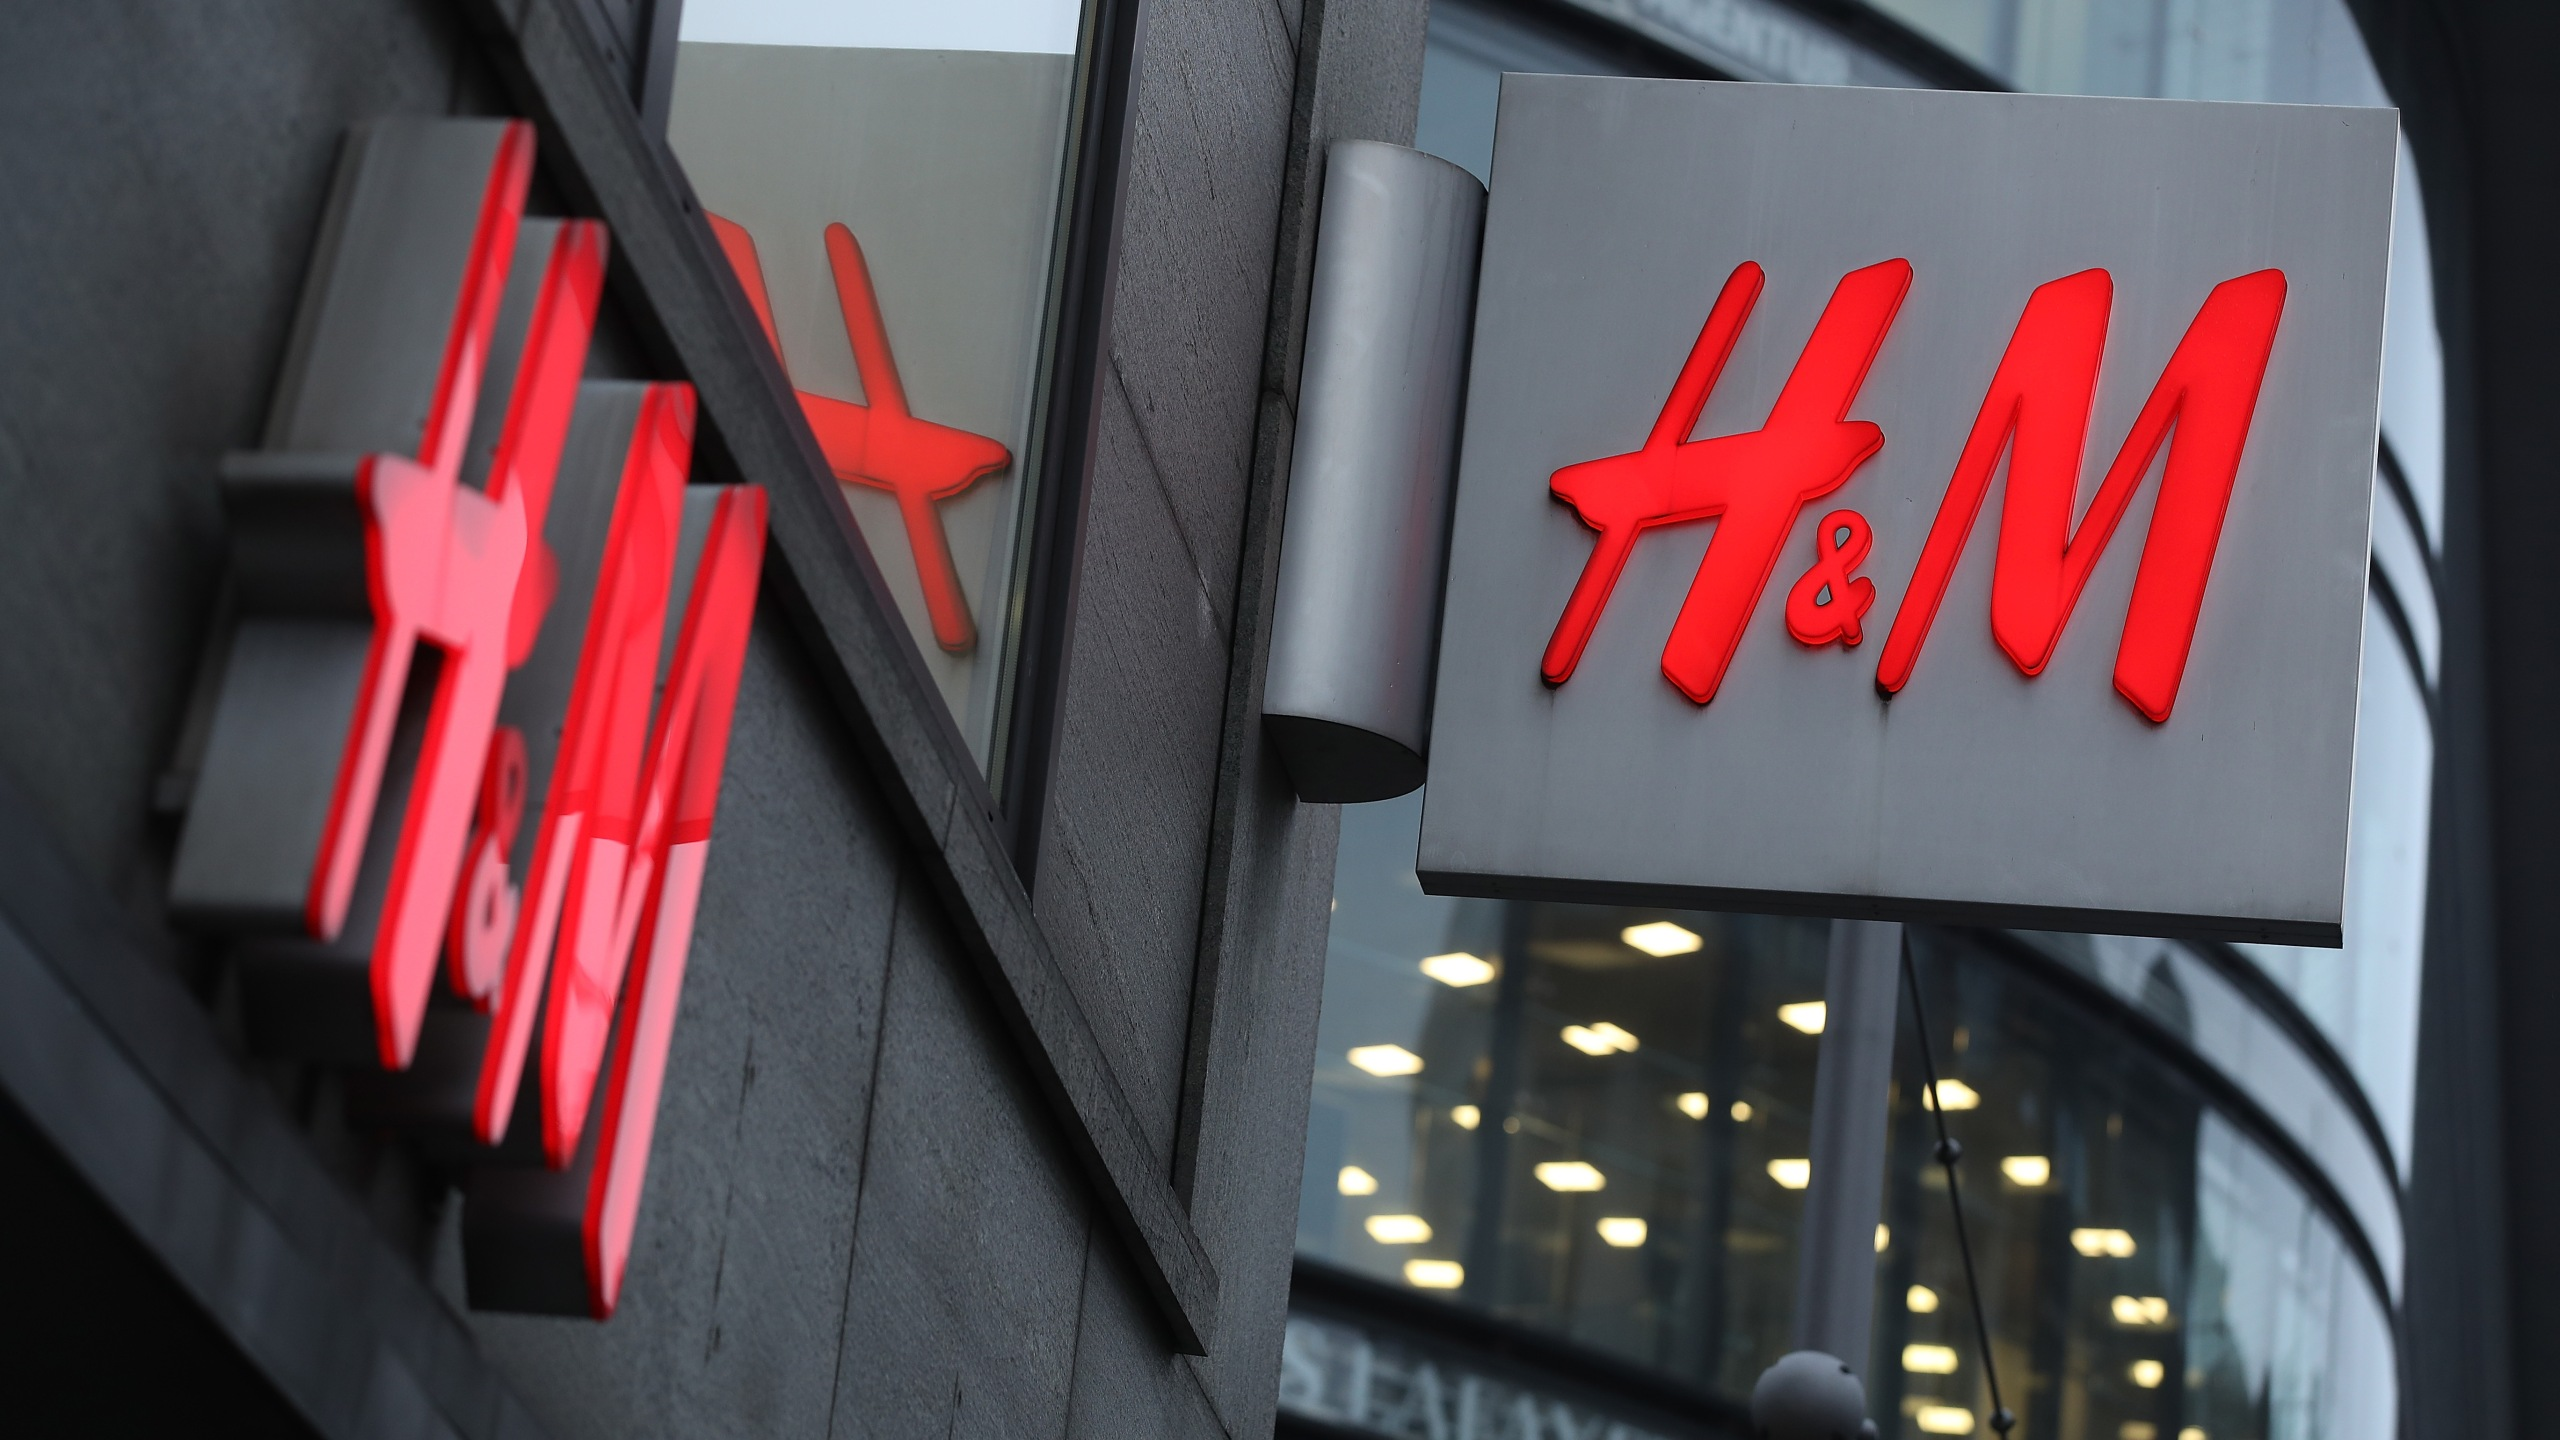 The logo of Swedish clothing retailer H&M hangs over one of its stores on March 28, 2018 in Berlin, Germany. (Credit: Sean Gallup/Getty Images)